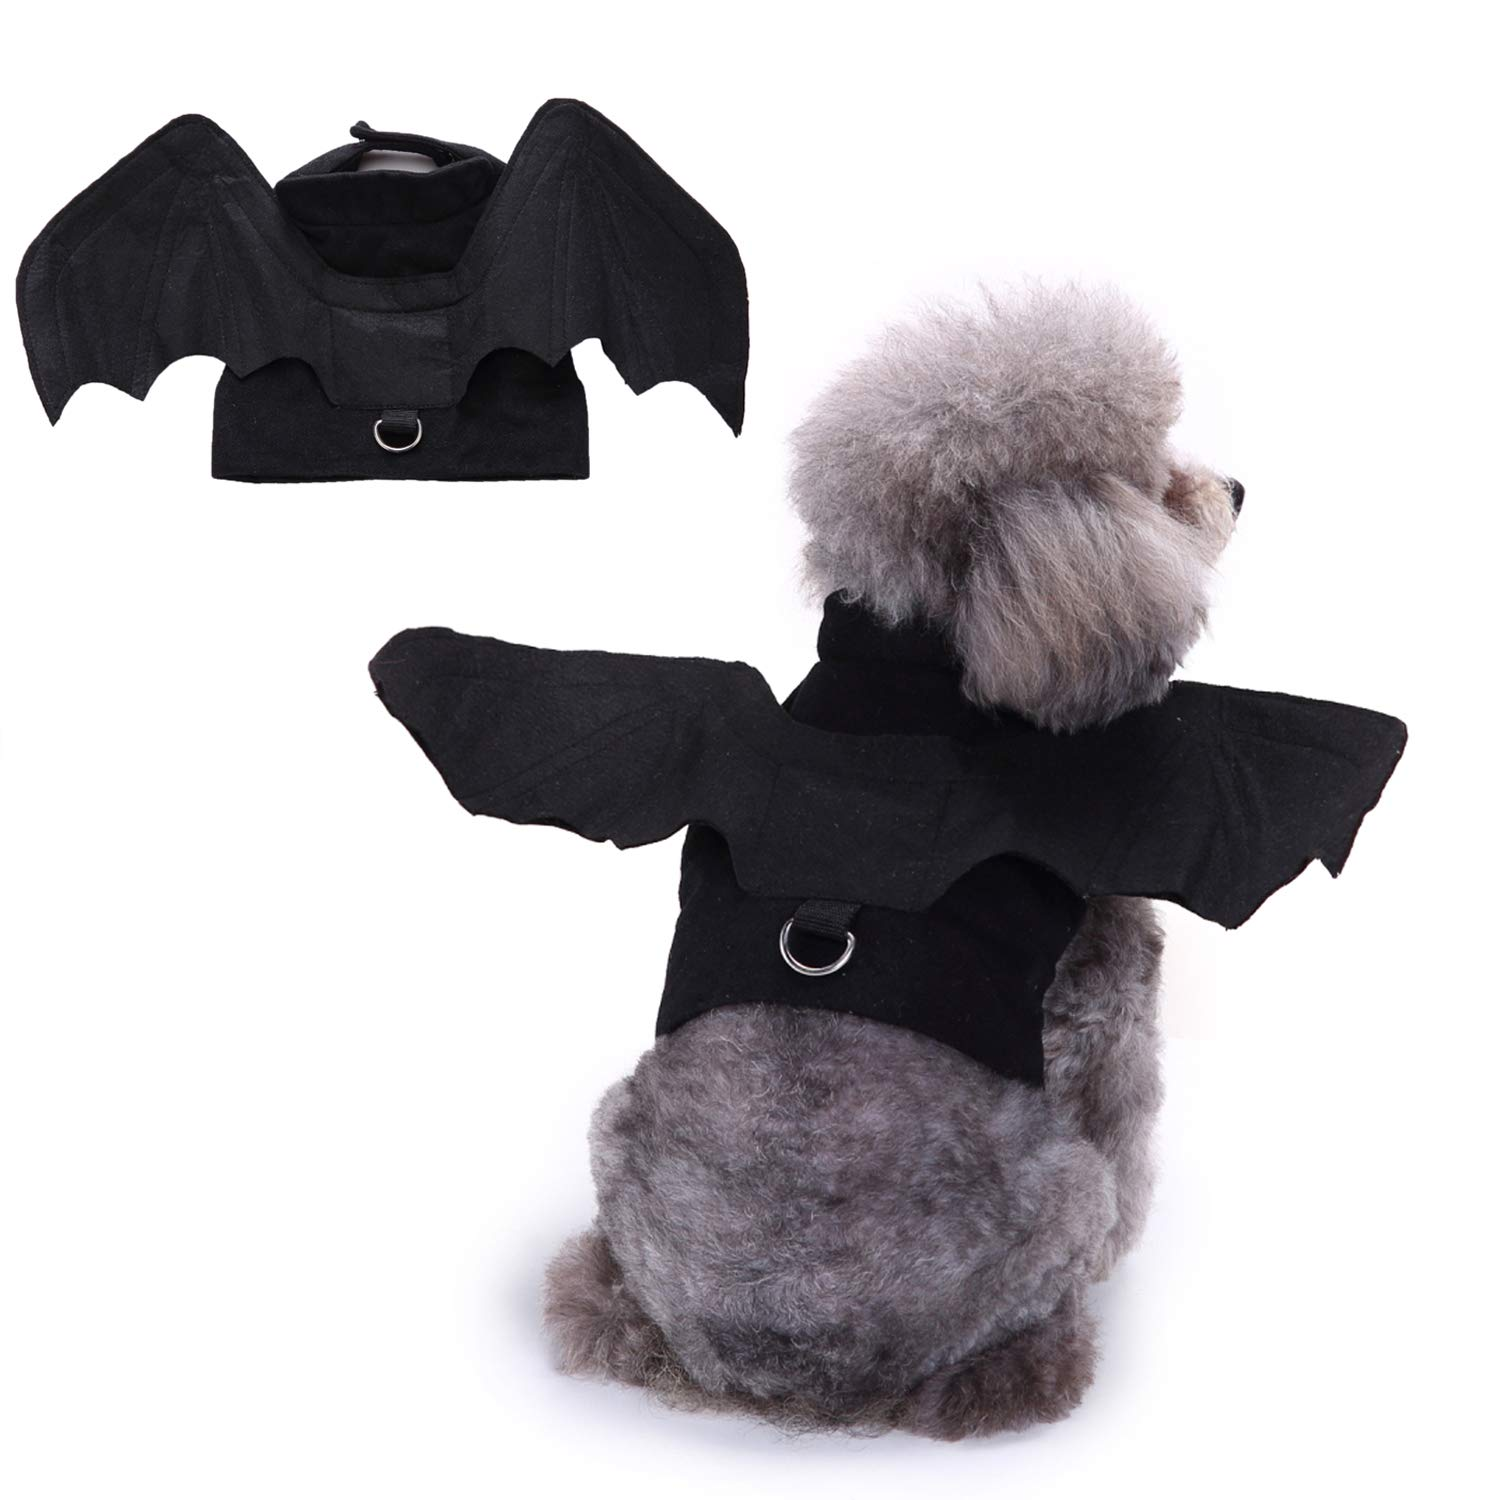 Bwogue Pet Bat Wings Costume for Cat & Dog Pet Apparel Clothes for Halloween Party Small